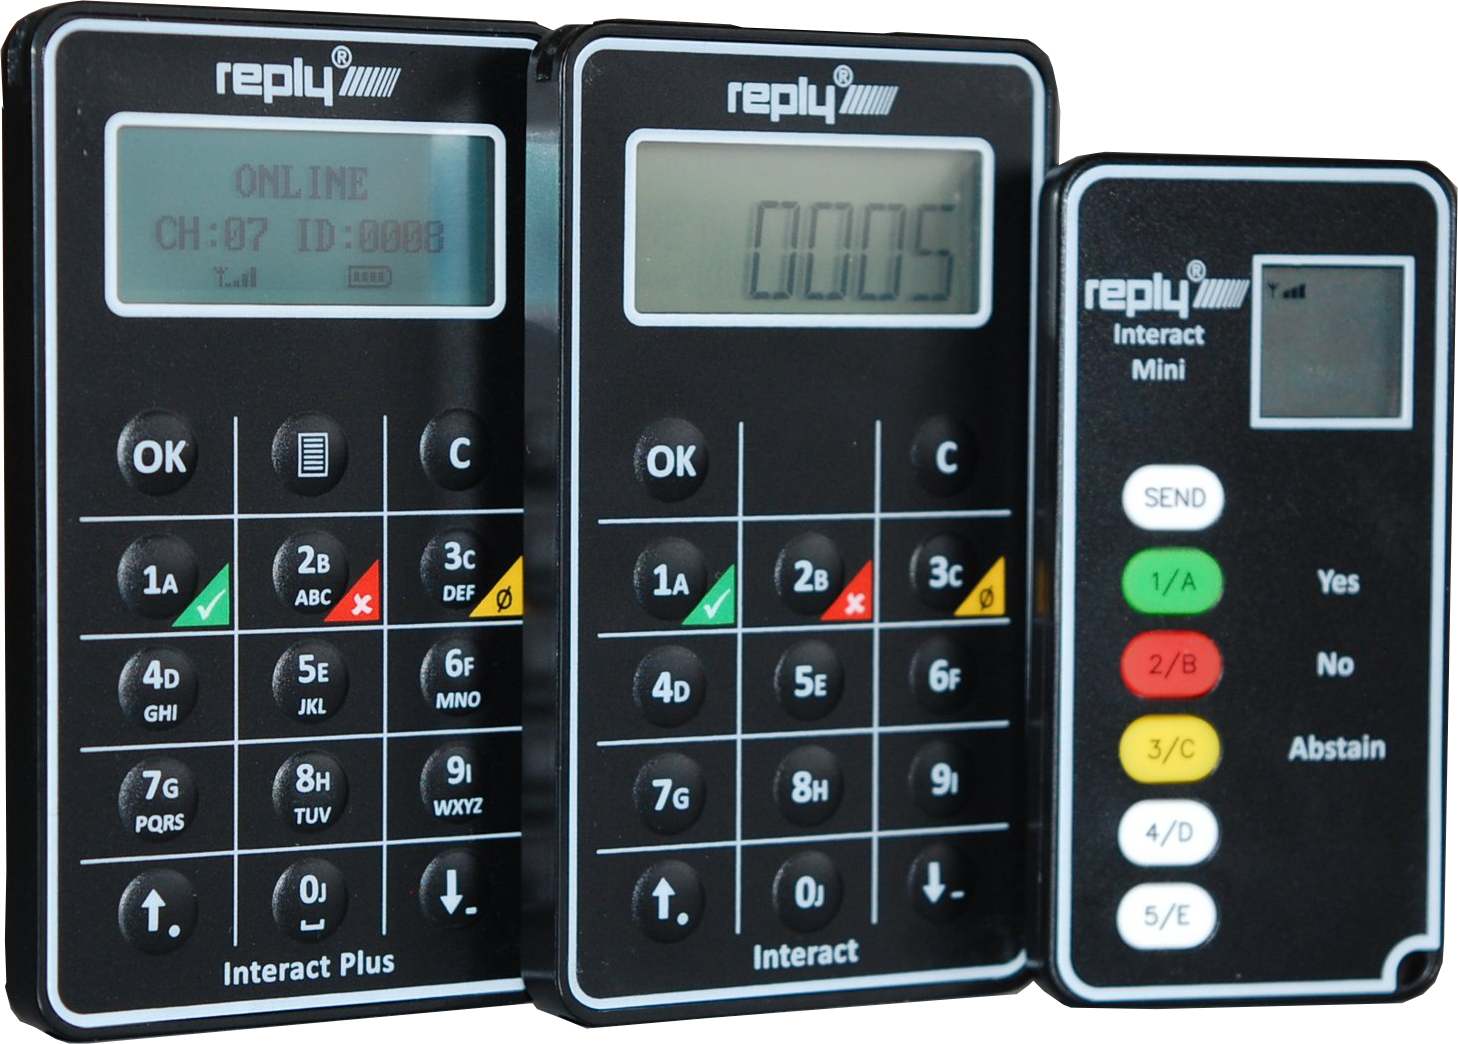 Reply Interact Series Keypads